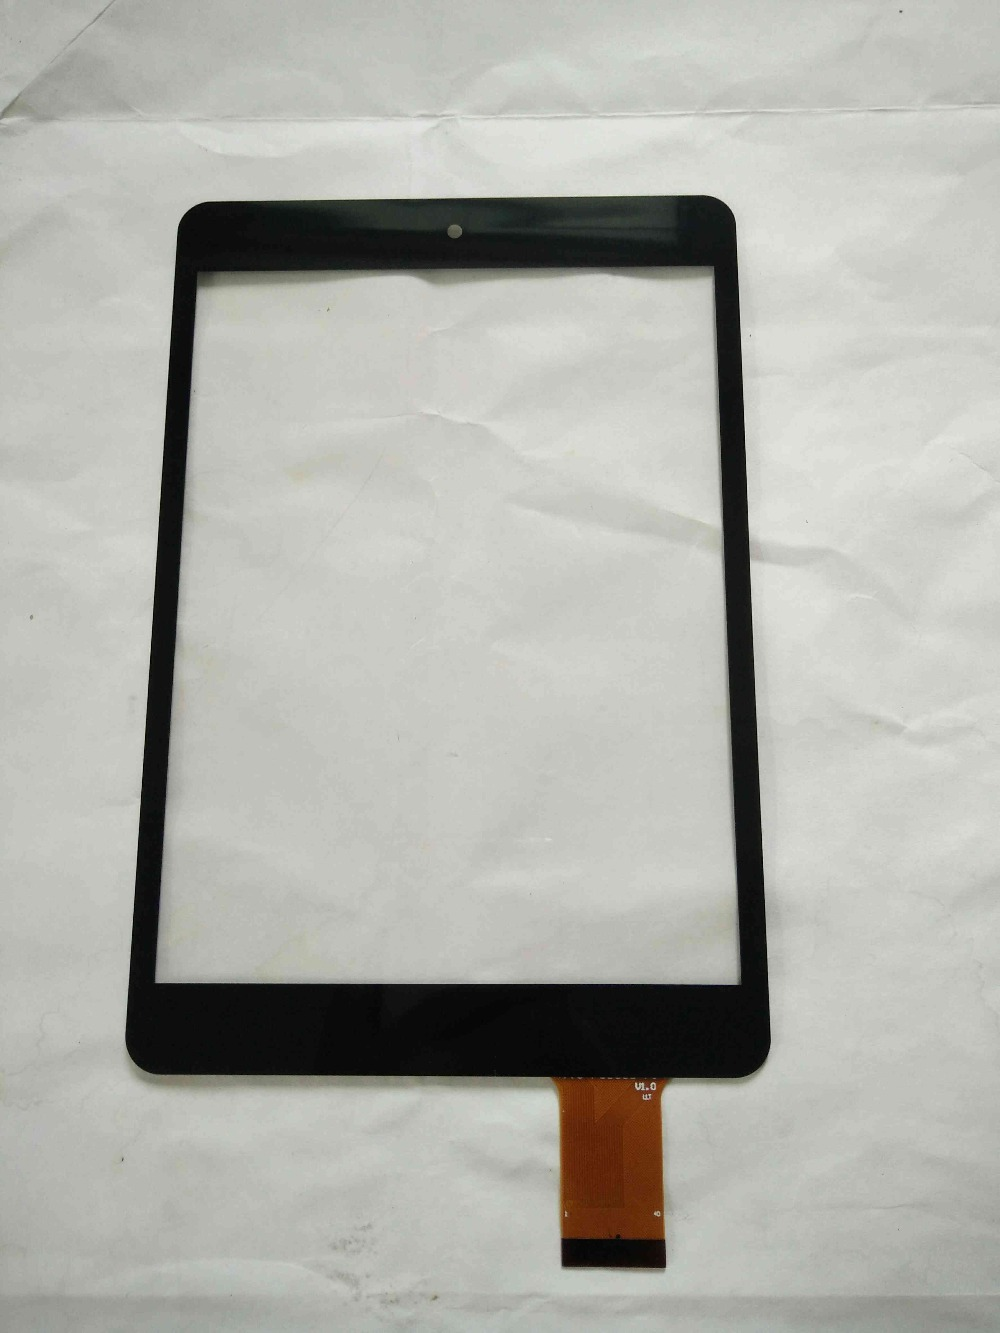 Cable coding YTG-P80003-F1 V1.0 original external screen tablet computer touch screen capacitive screen handwriting<br><br>Aliexpress